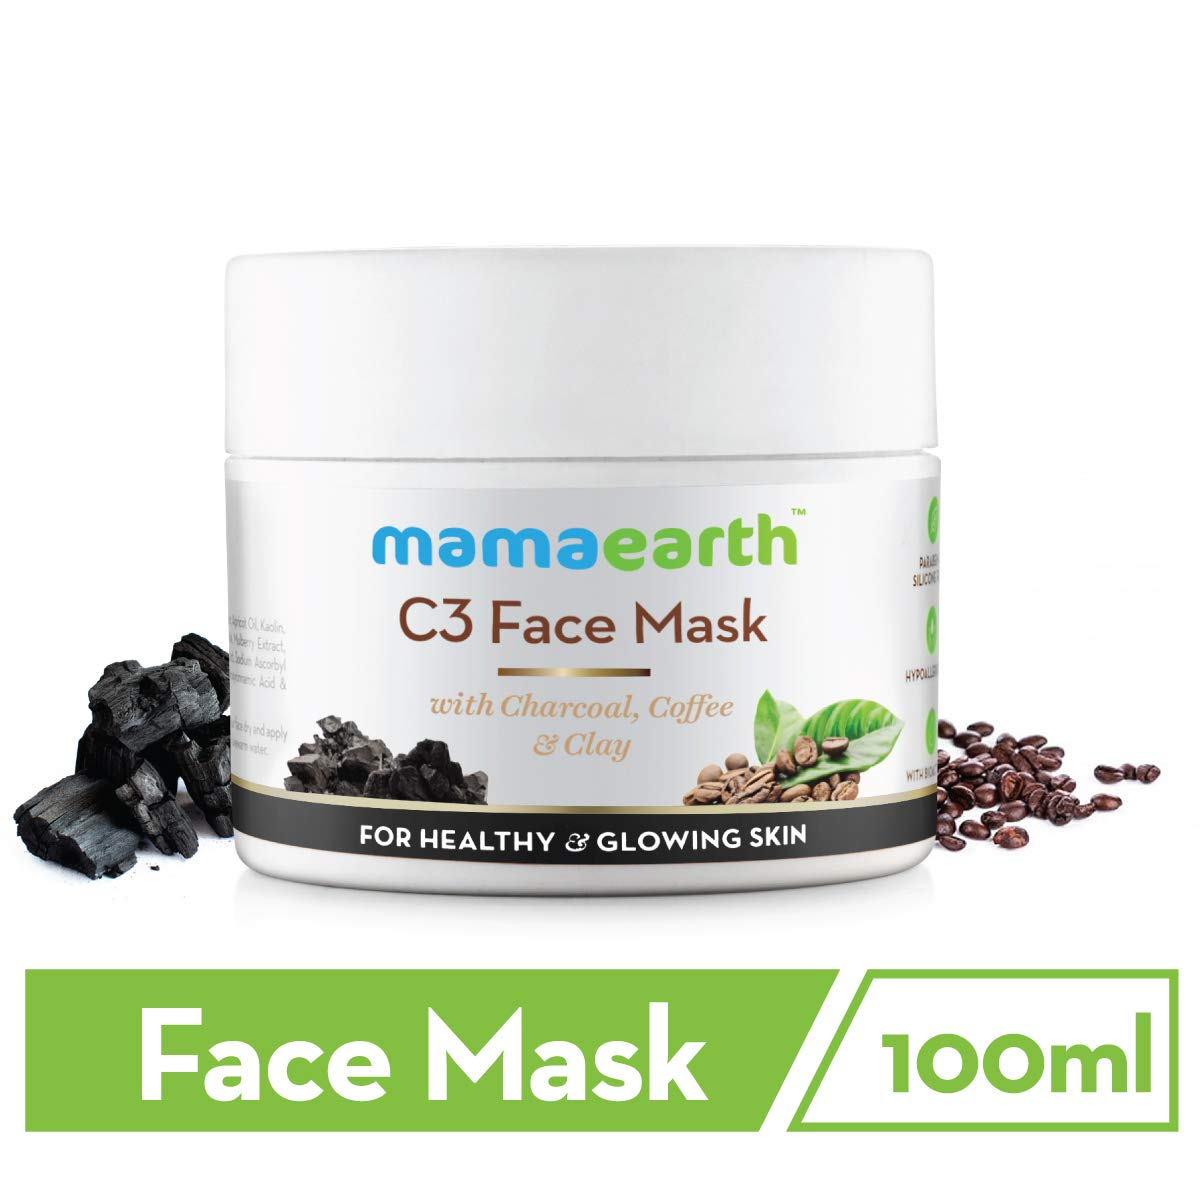 Mamaearth Charcoal, Coffee and Clay Face Mask